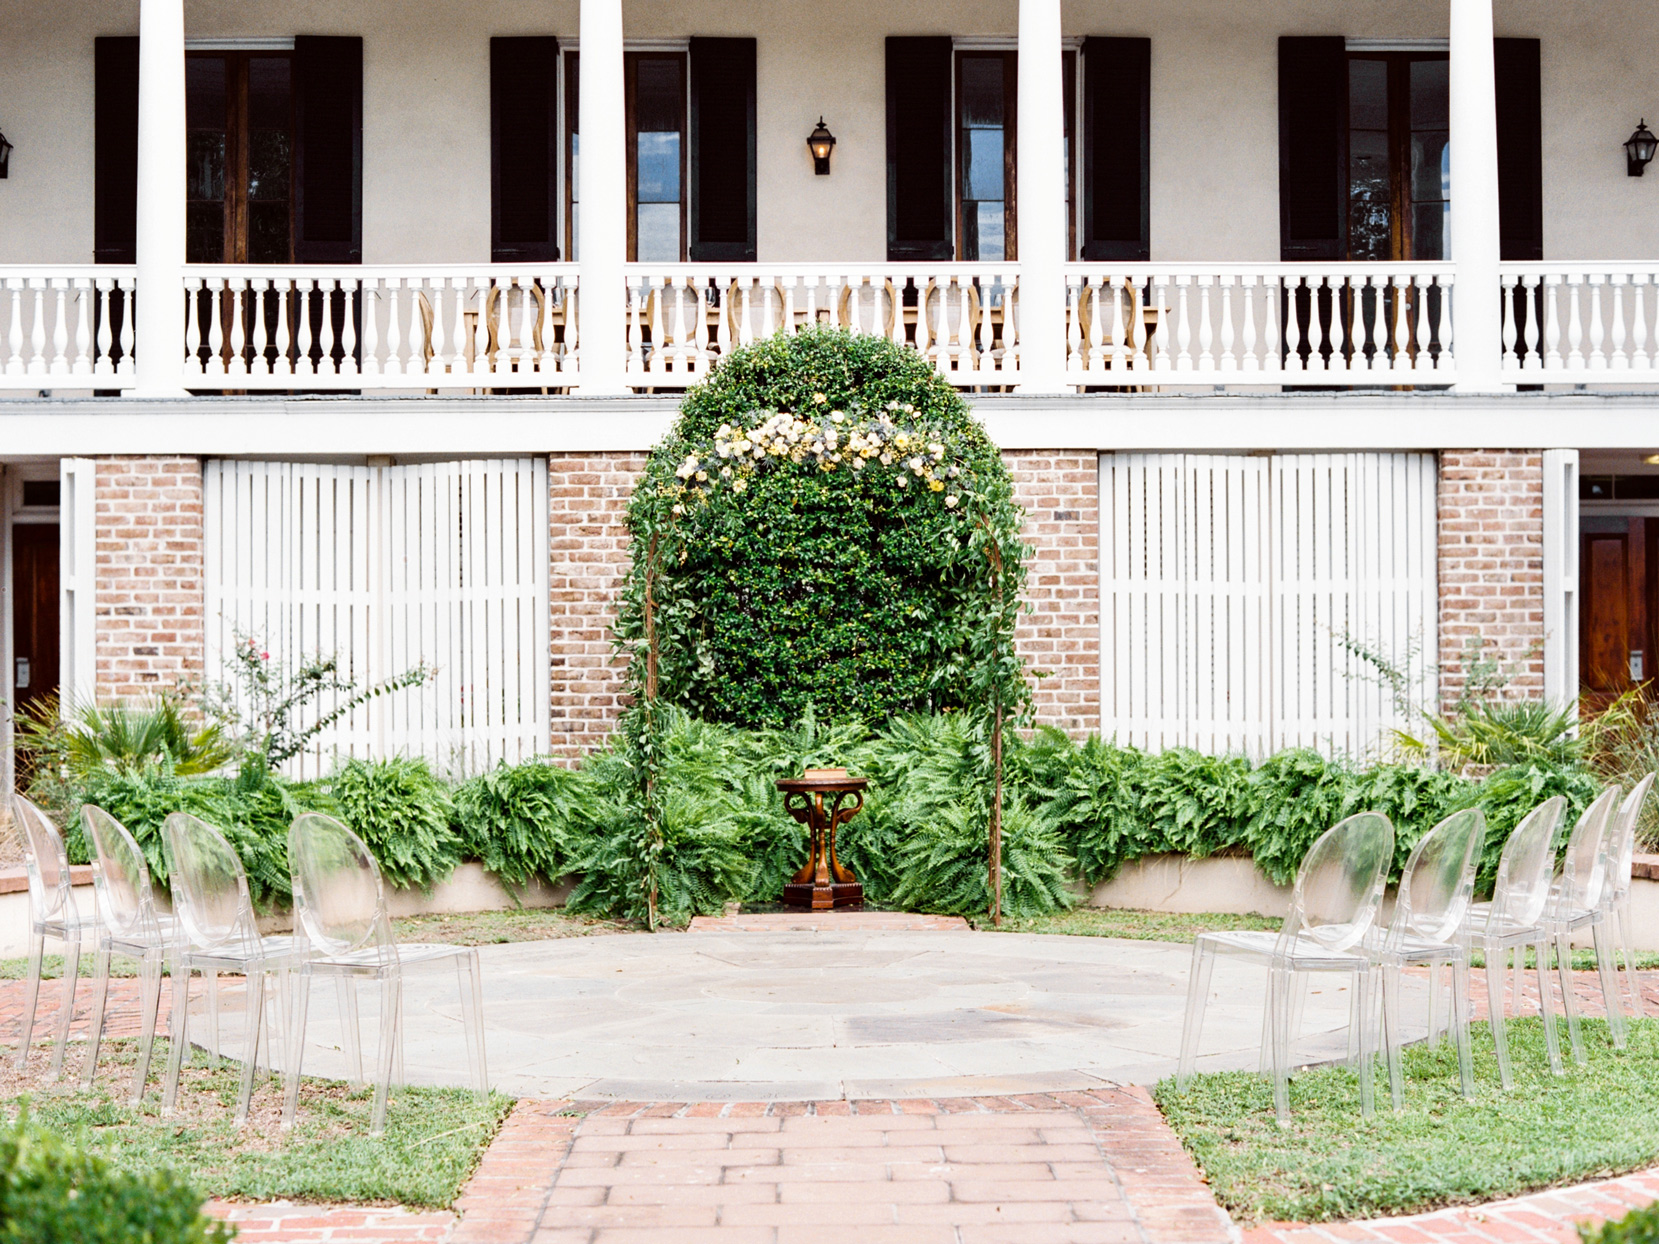 East Bay Manor wedding ceremony site outdoors